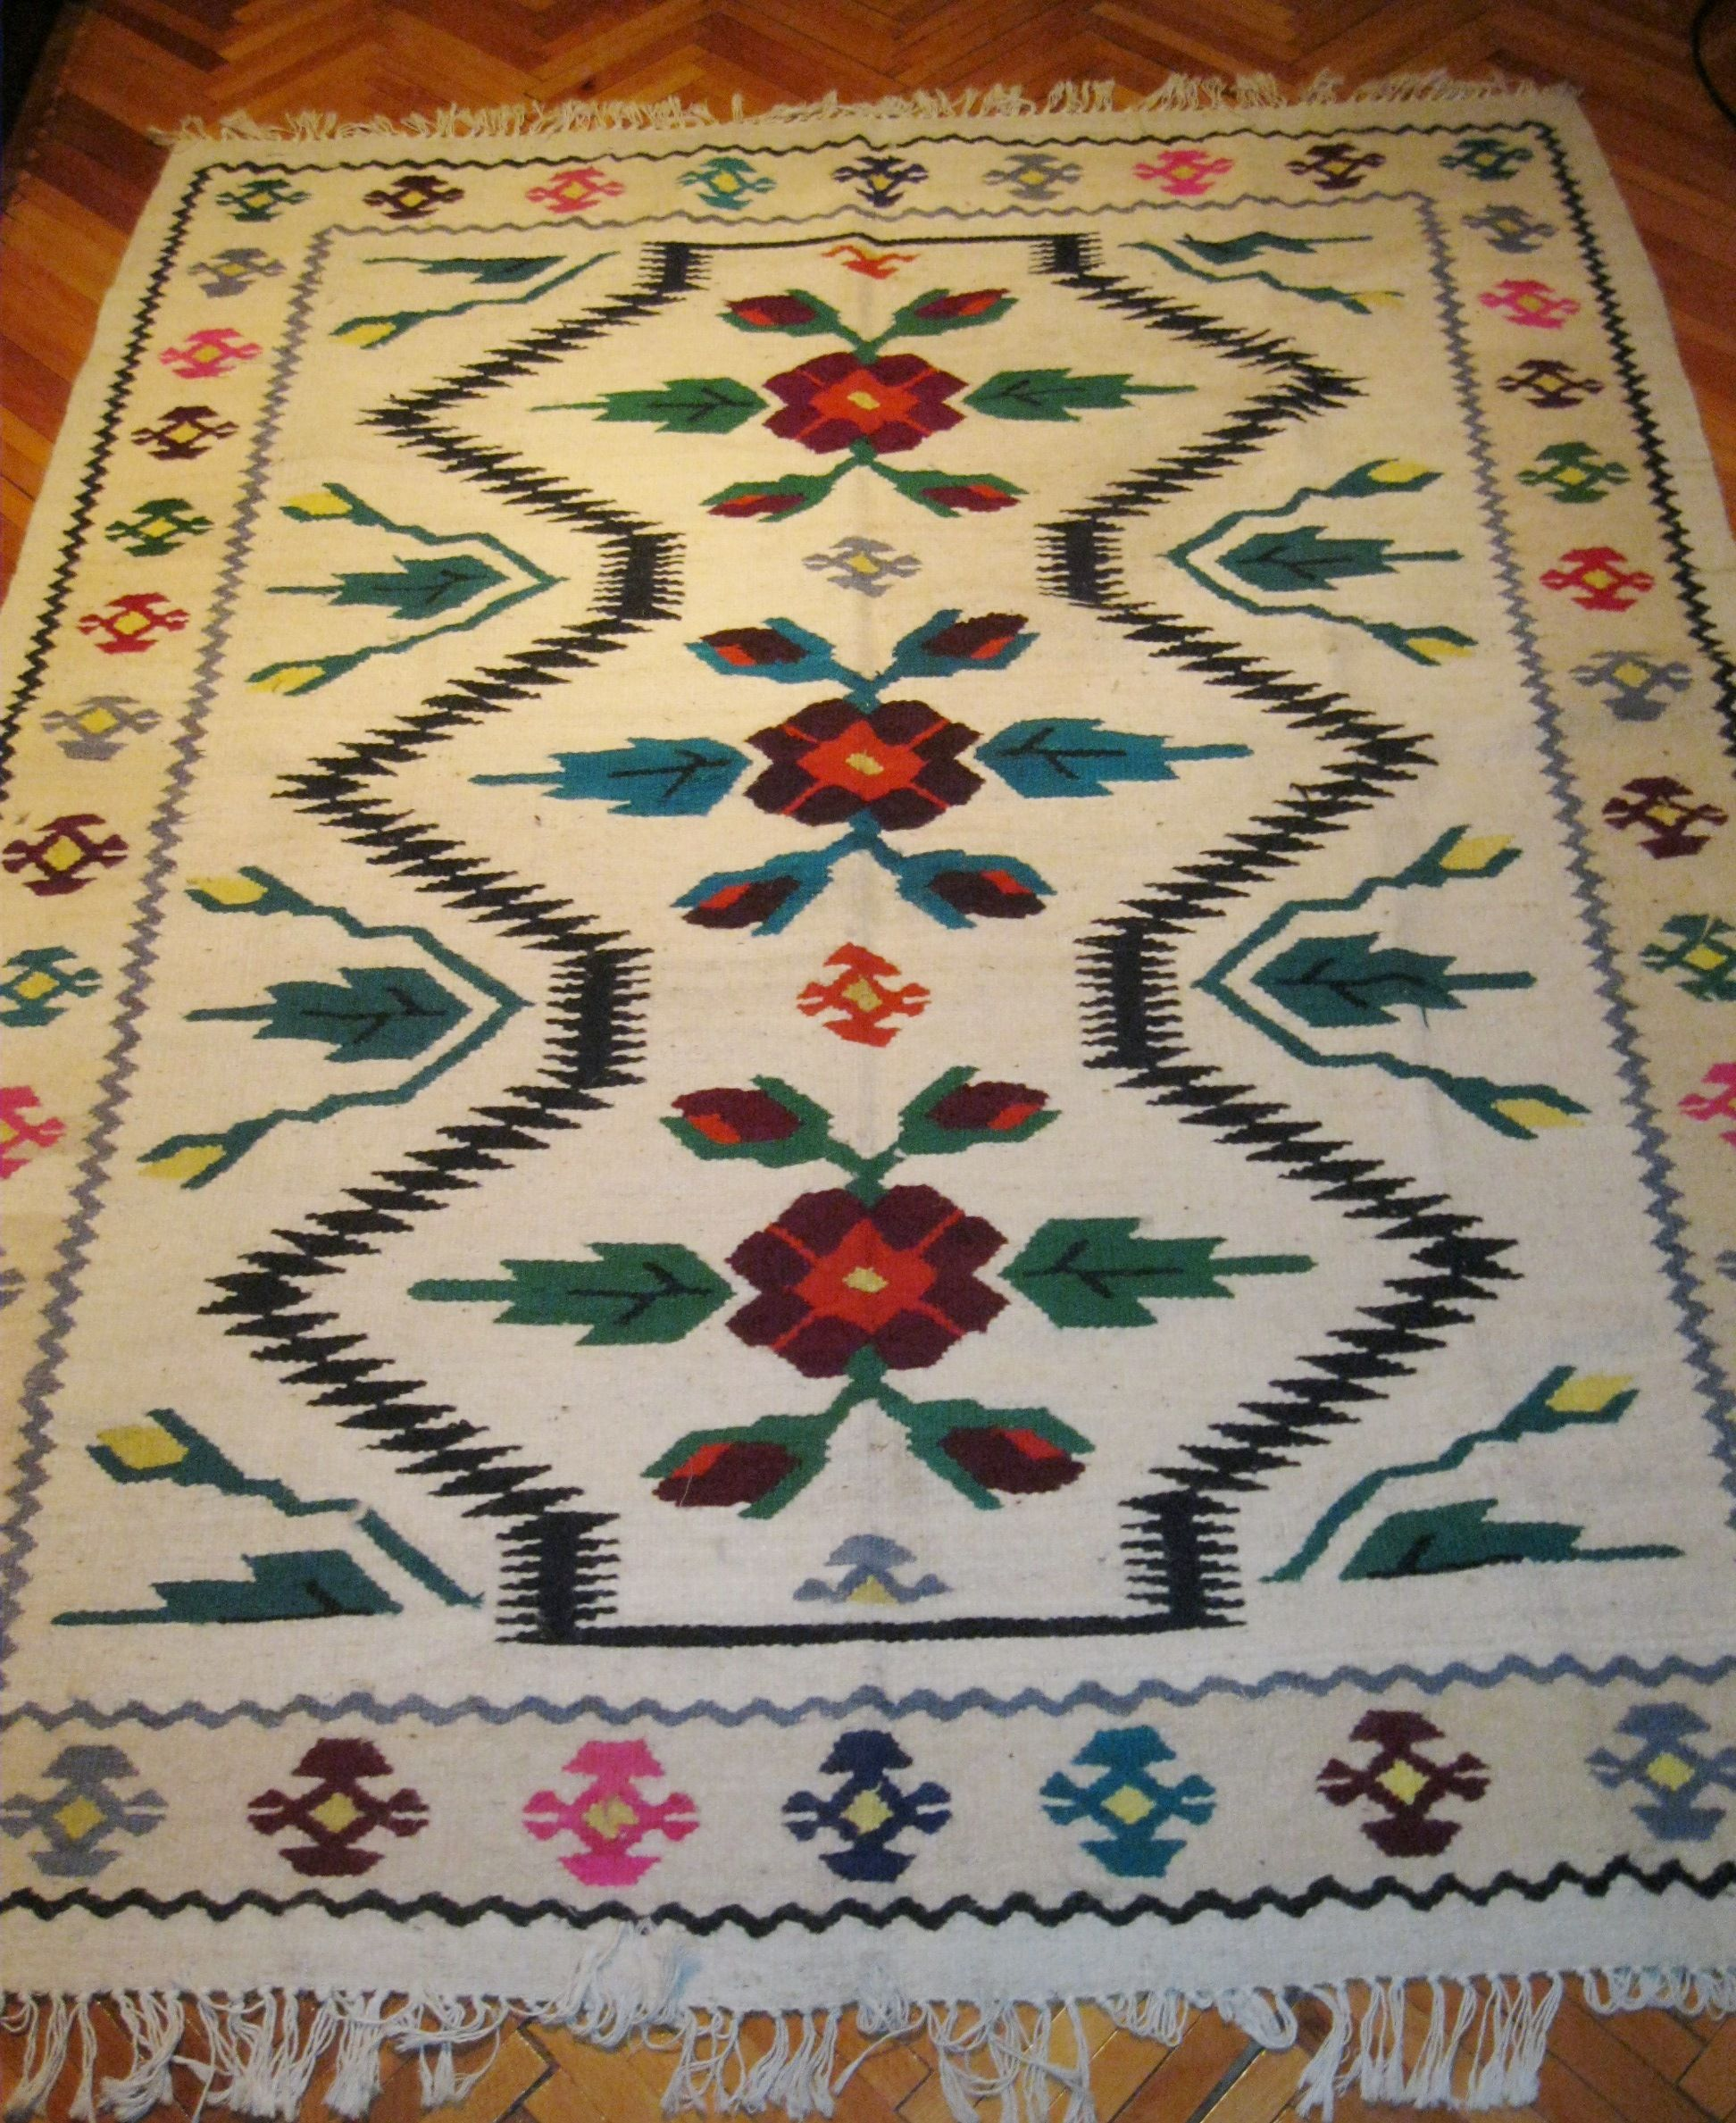 Beautiful Antique Traditional Romanian Hand Woven Wool Carpet Rug With Both Fl And Geometrical Pattern